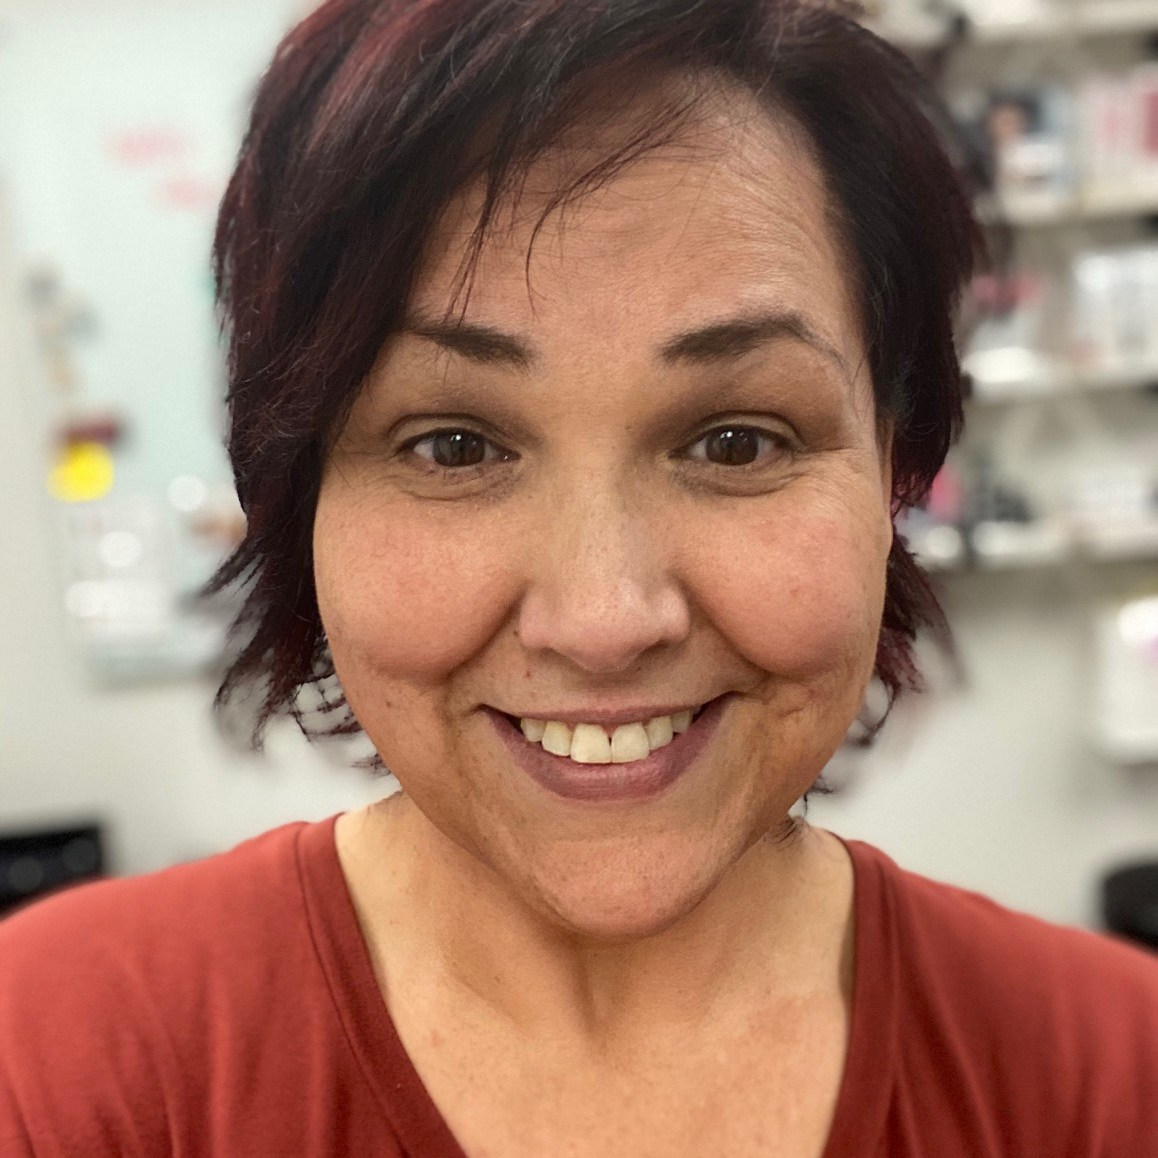 Veronica Bessey, Plano hair stylist